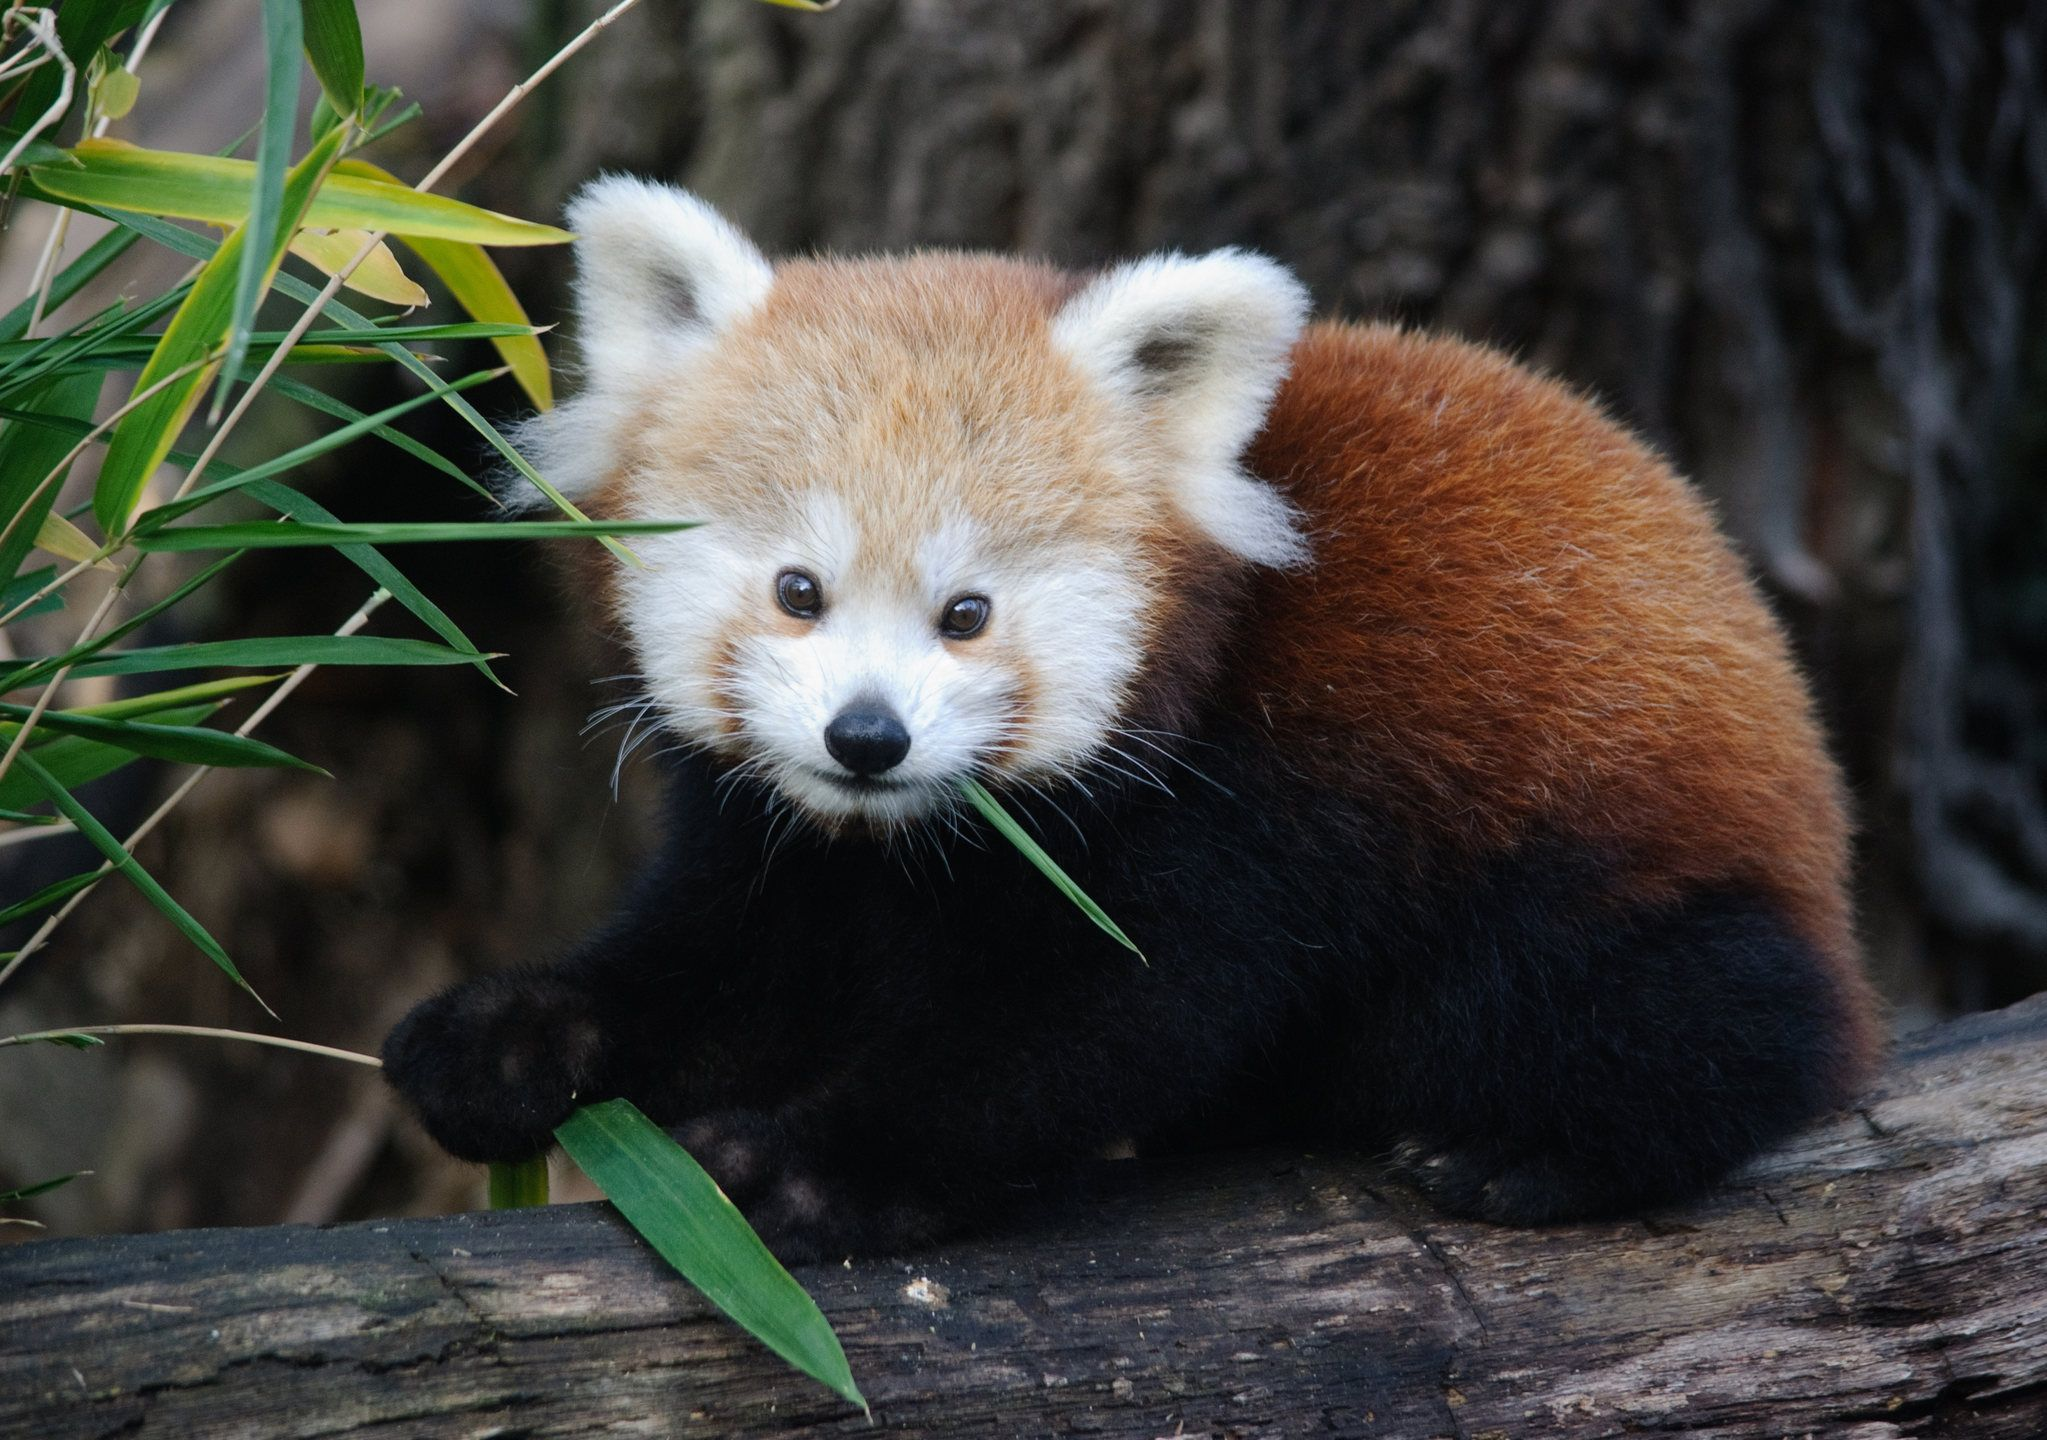 Baby Red Panda Eating Leaves Red Pandas Rarely Eat Anything Other Than Young Bamboo Leaves And A Few Insects Baby Animals Cute Animals Animals